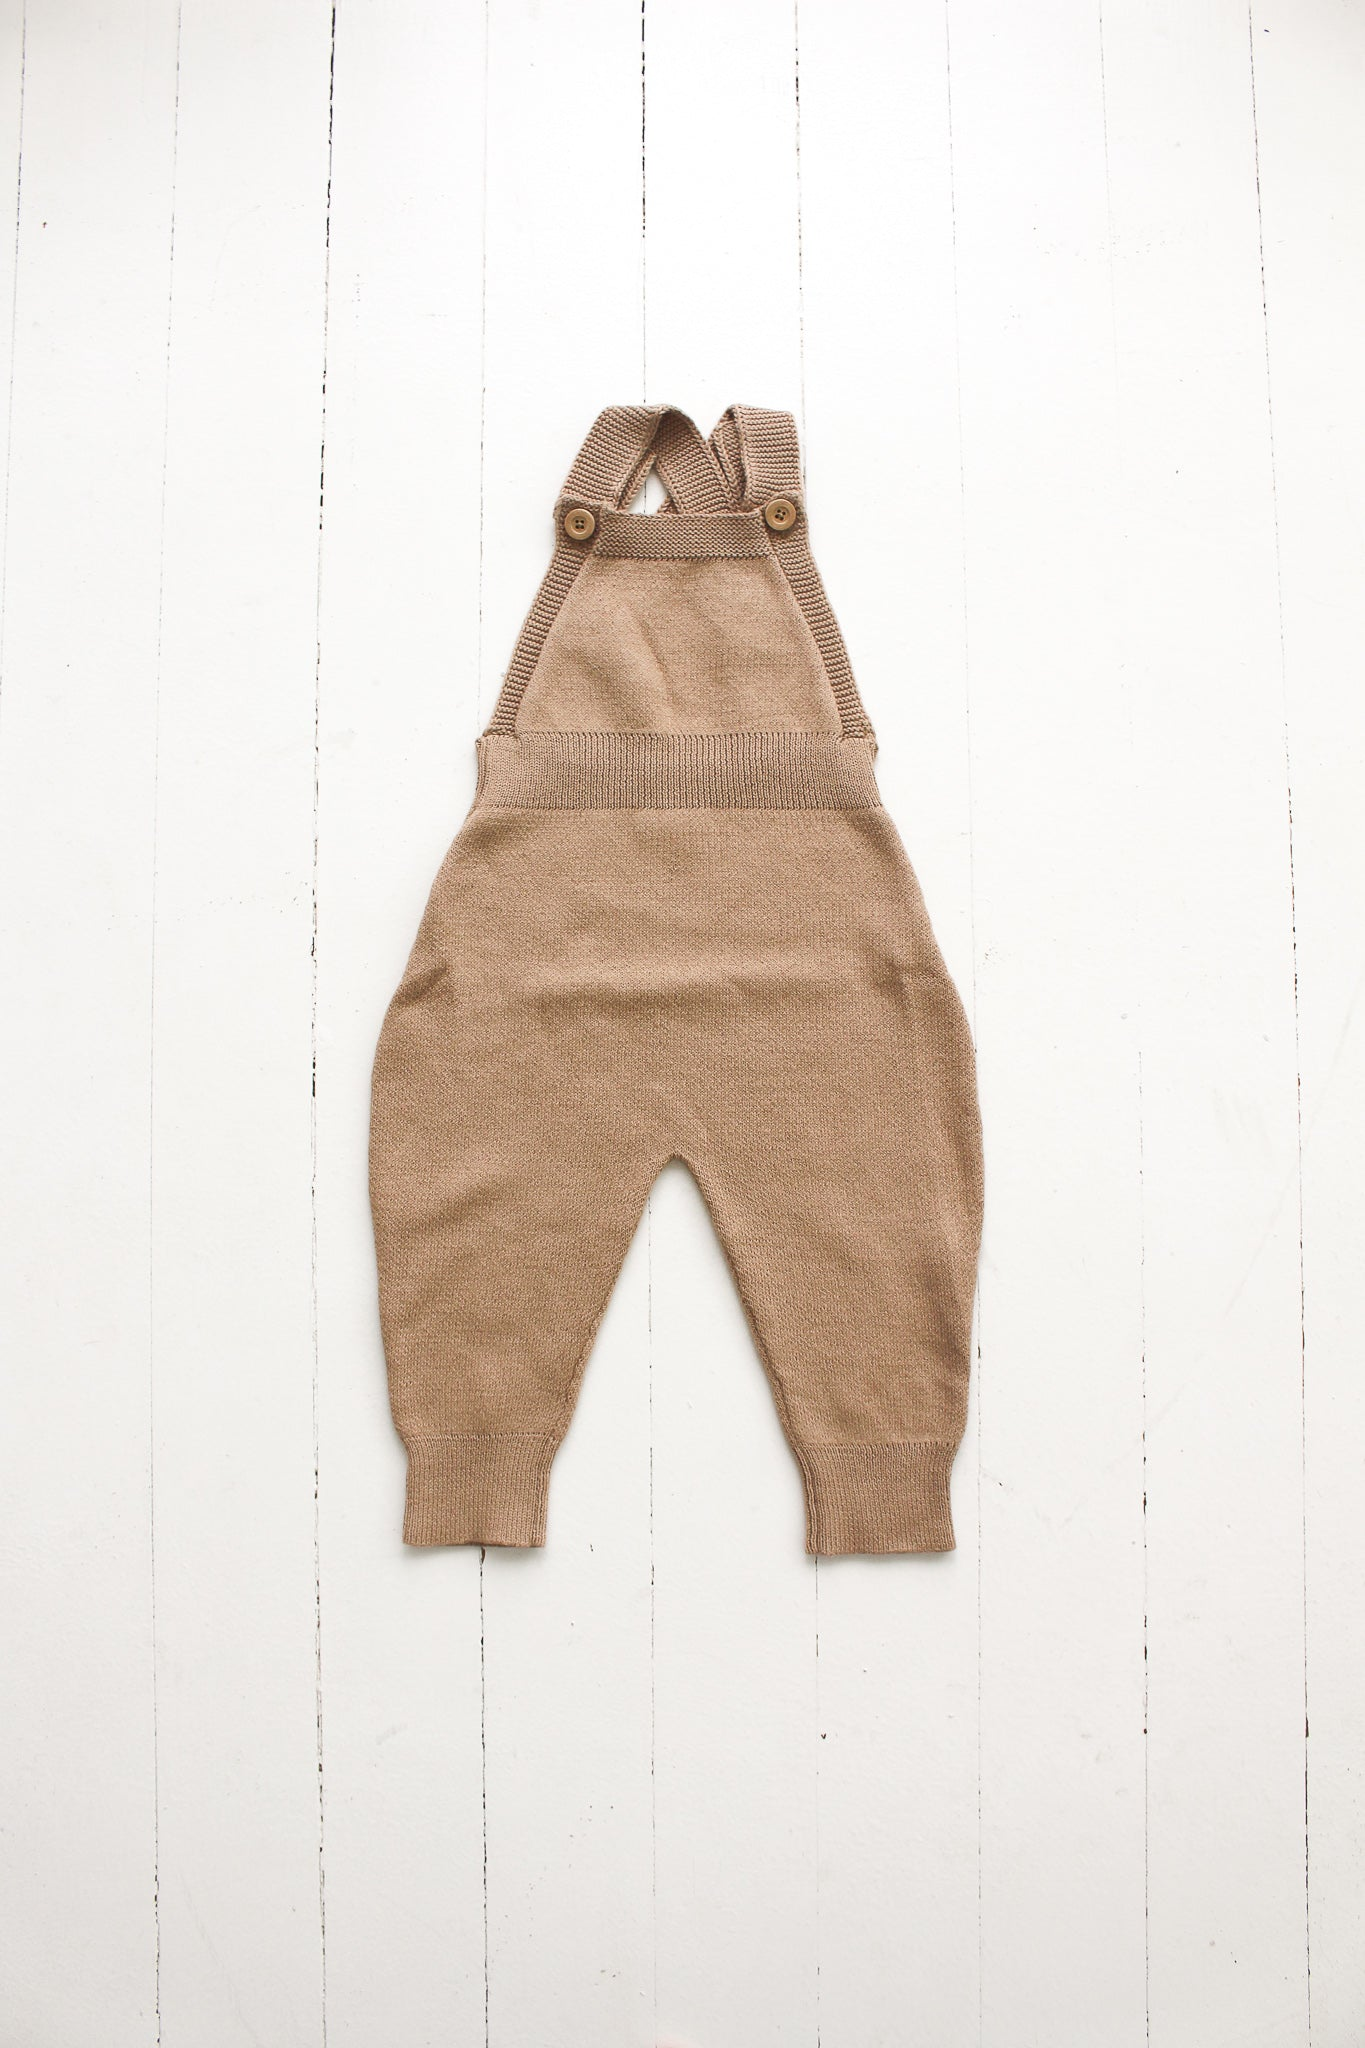 Fin and Vince - Knit Overall (Toasted Almond)